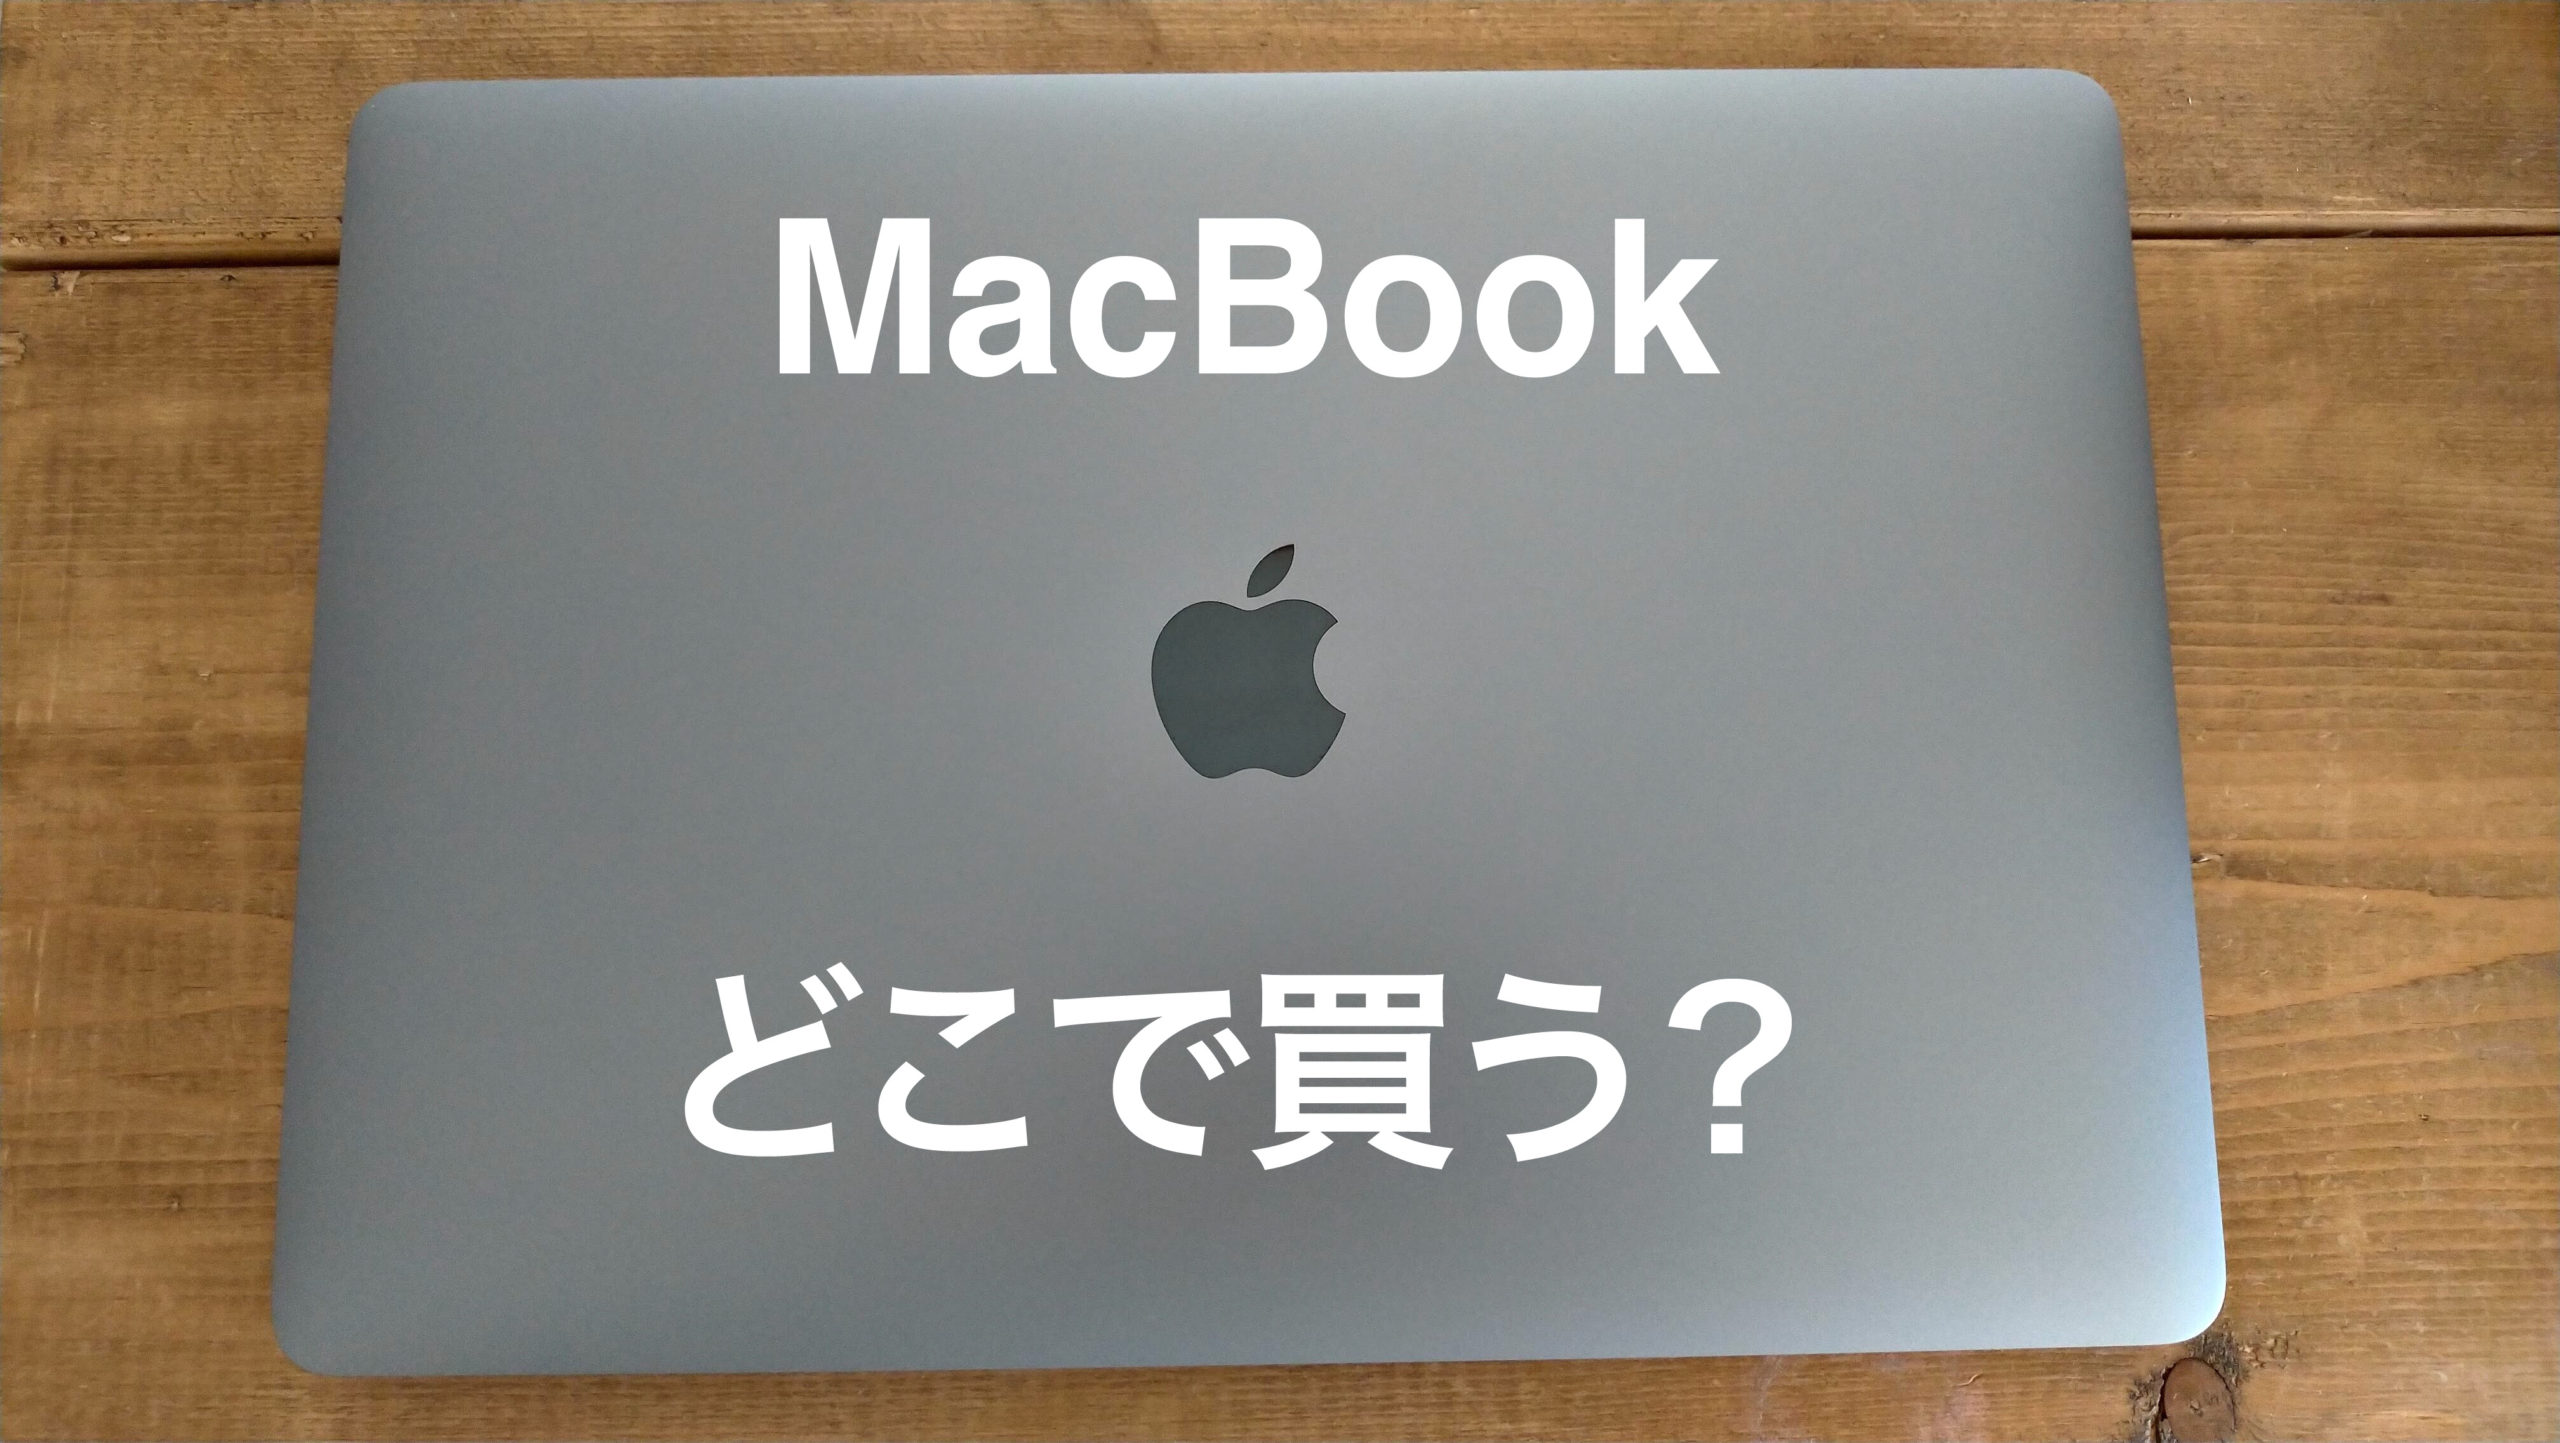 MacBook dokode